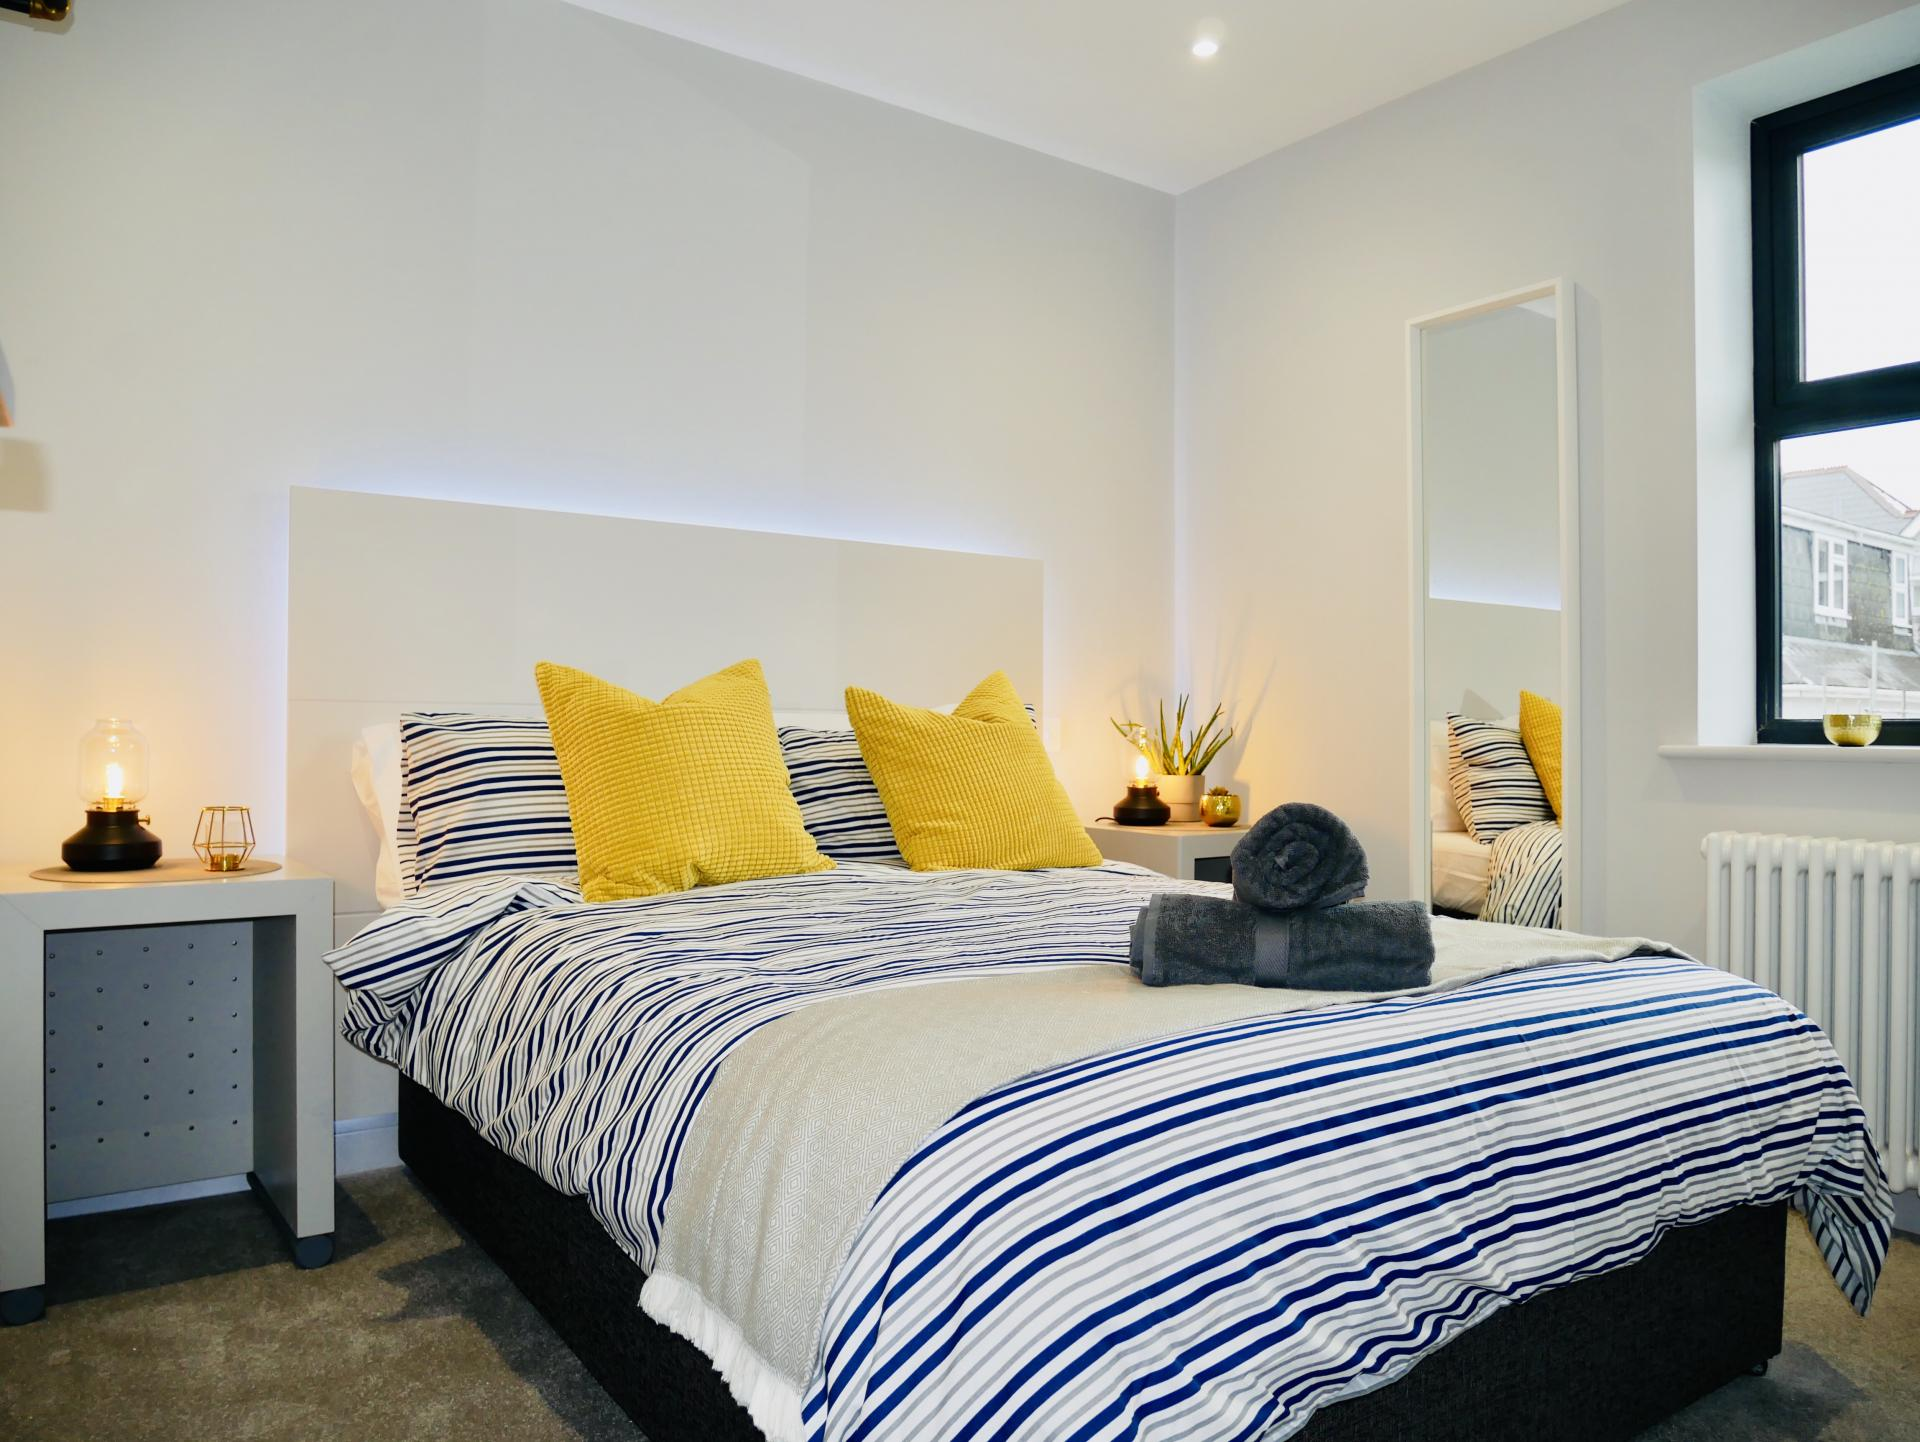 Stripy bedding at AlumPointe Apartments